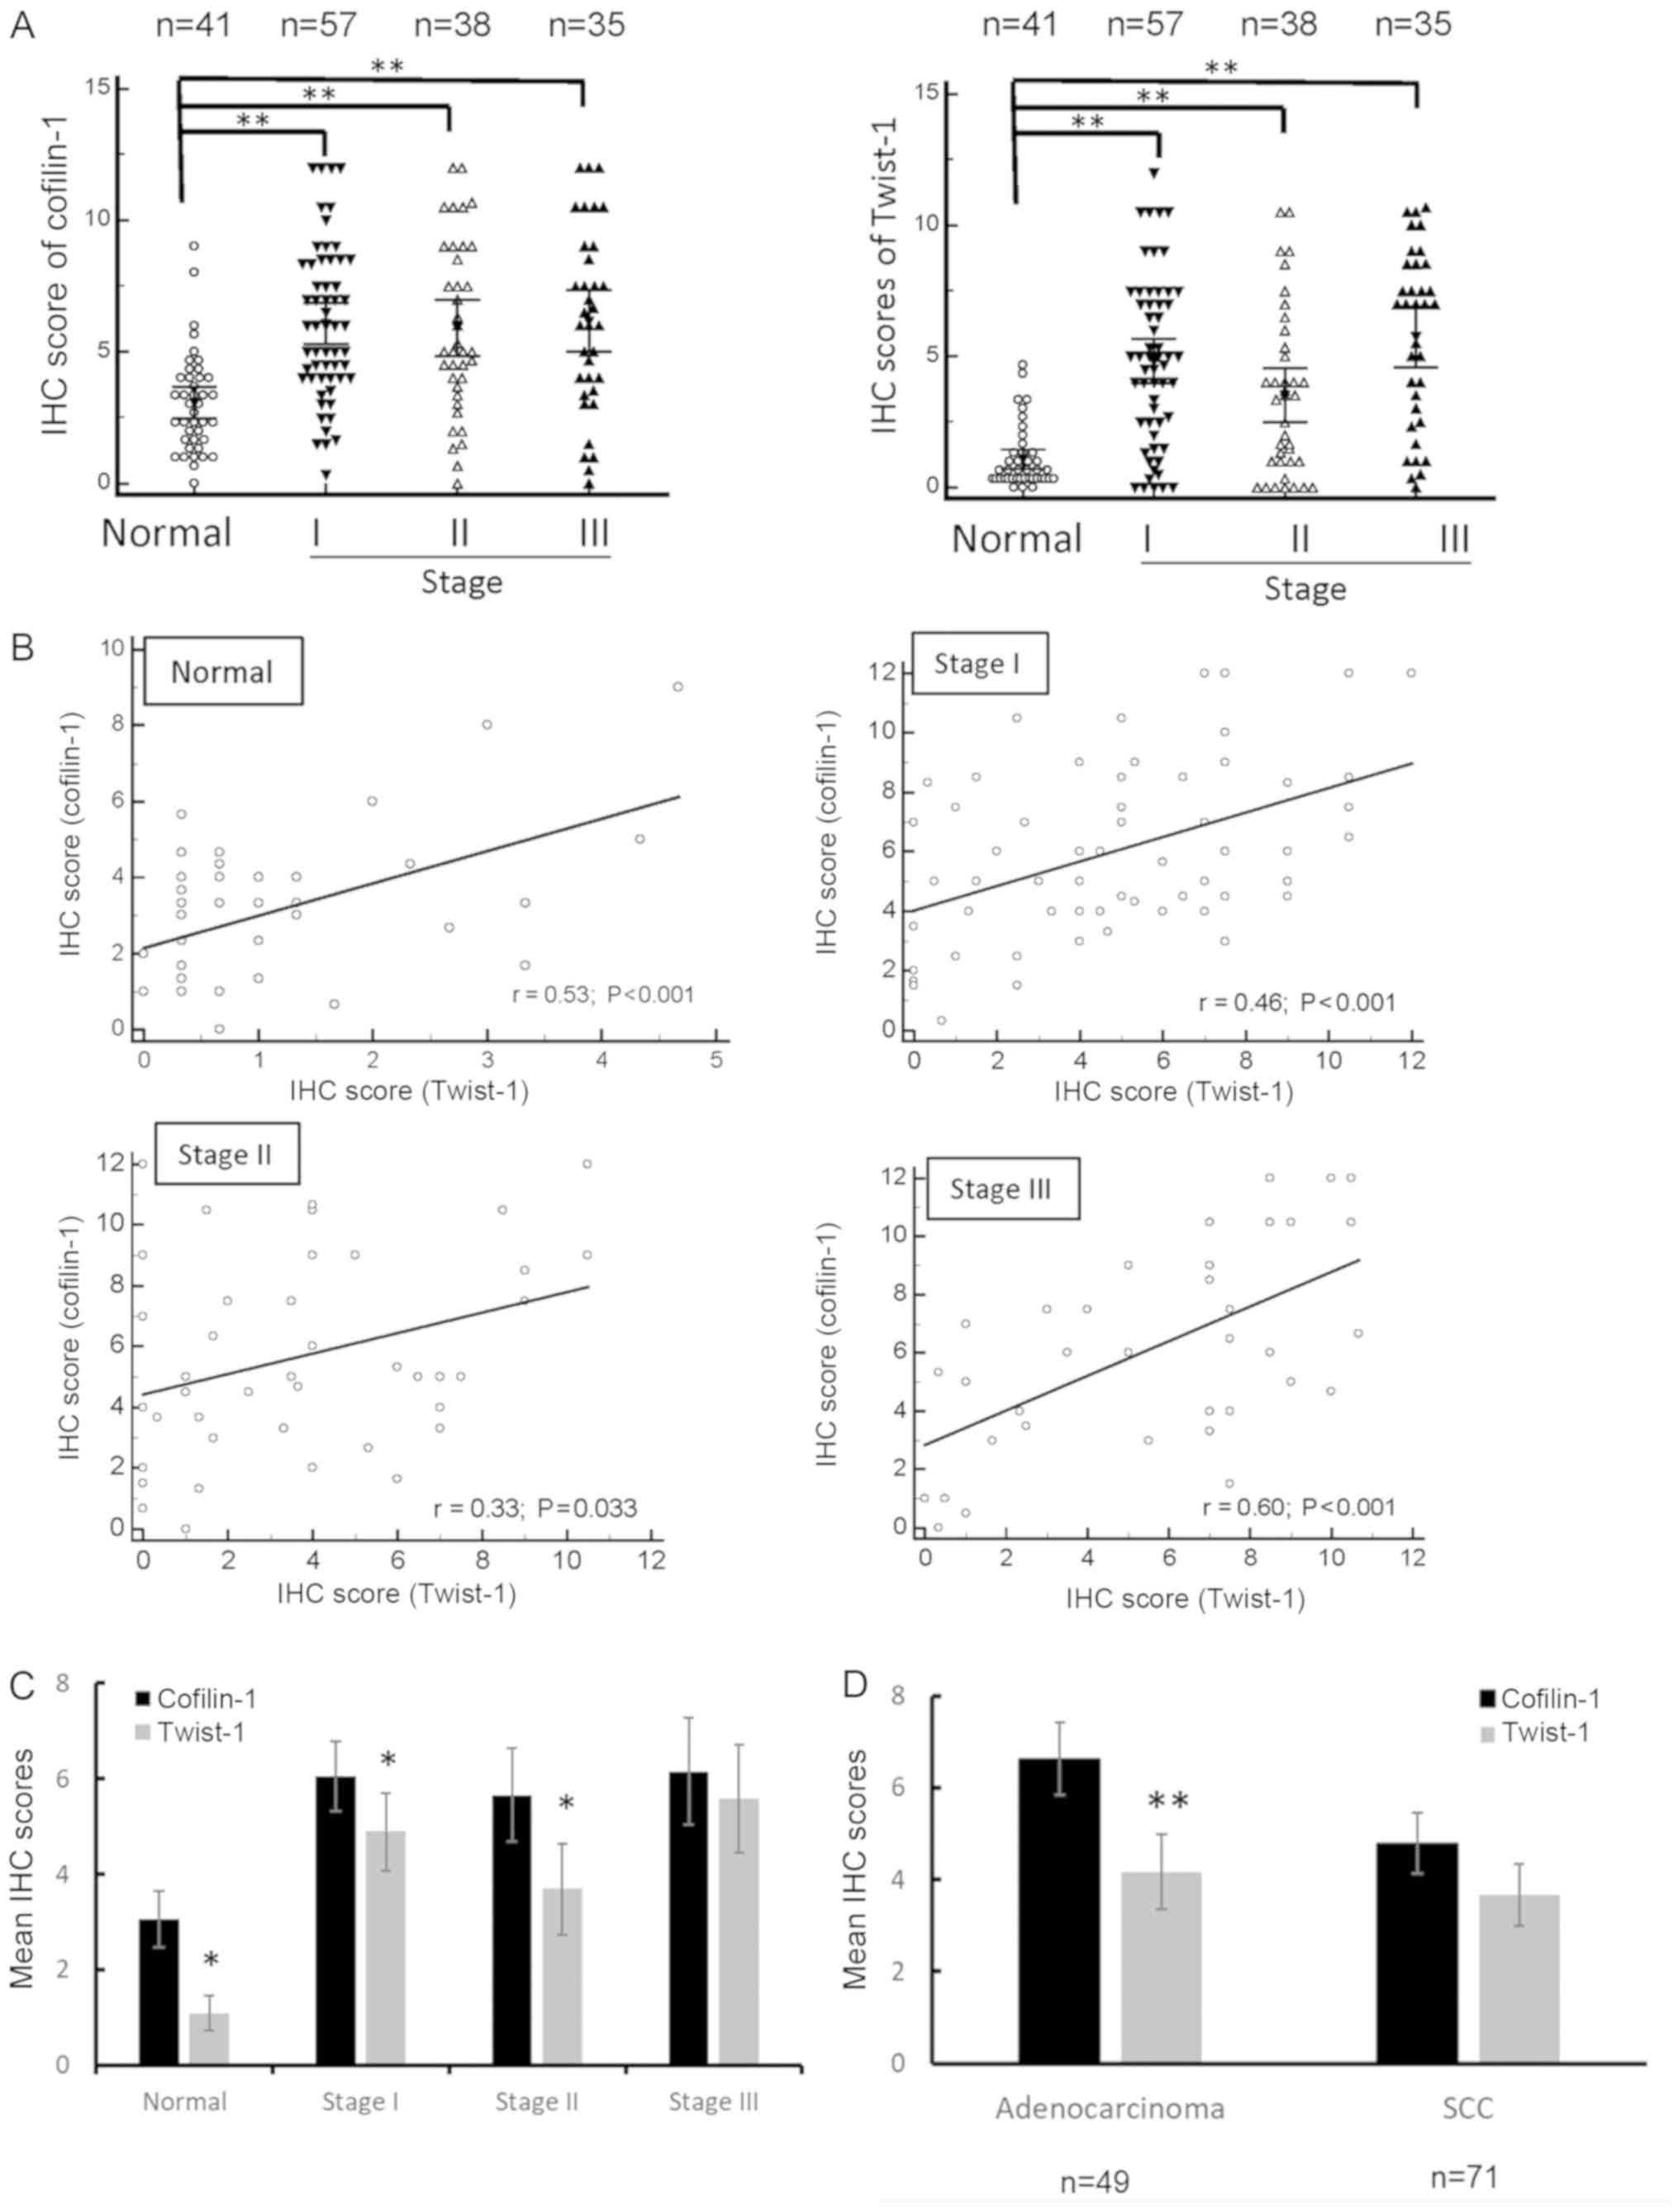 Comparison Of Cofilin 1 And Twist 1 Protein Expression In Human Non Small Cell Lung Cancer Tissues Twist.moe — all time overall report. small cell lung cancer tissues